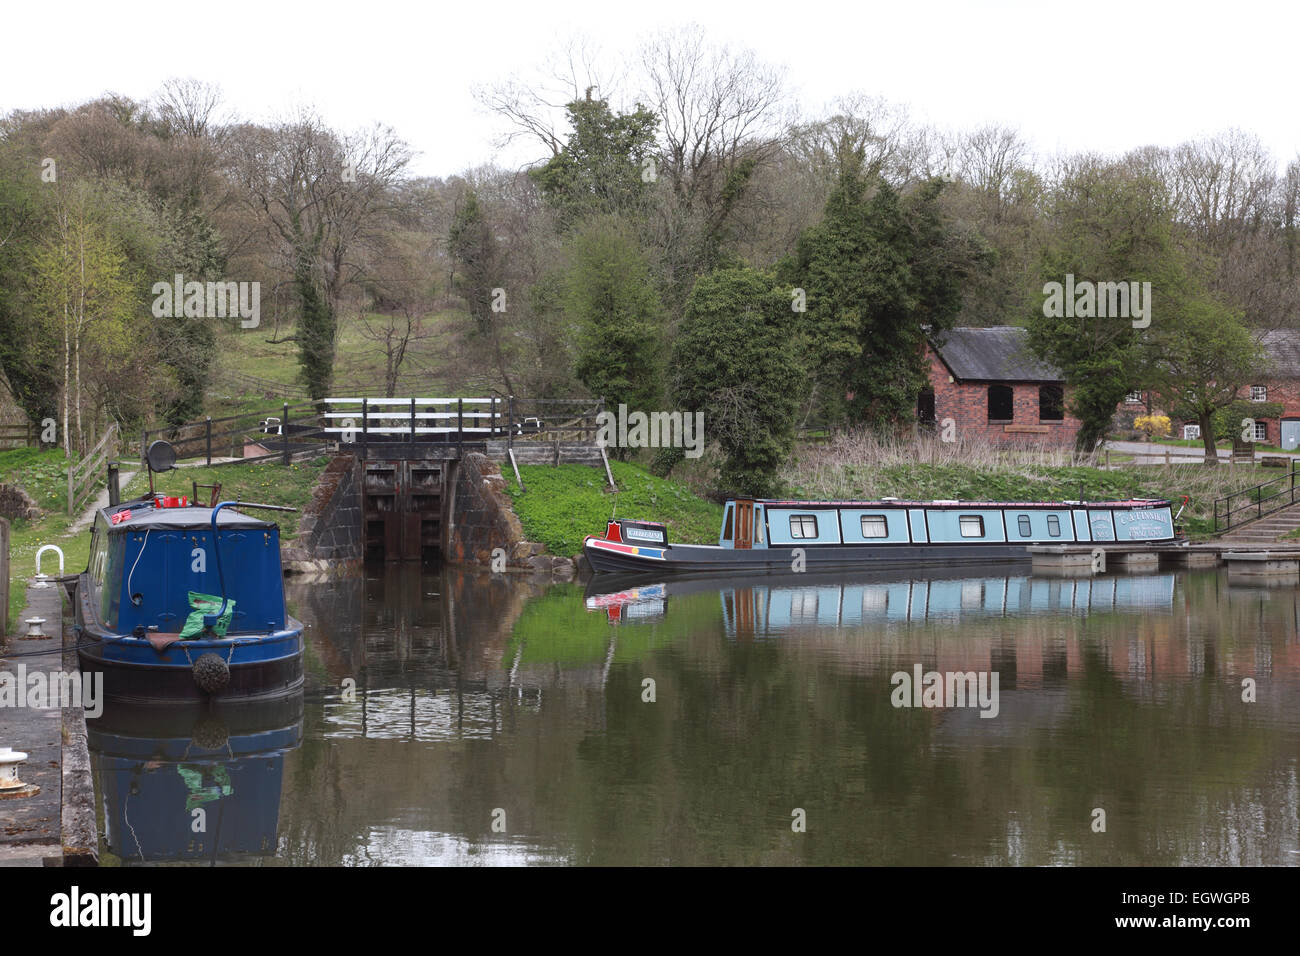 Narrowboats moored in Froghall Basin in Staffordshire at the end of the Caldon Canal, entered by a lock - Stock Image